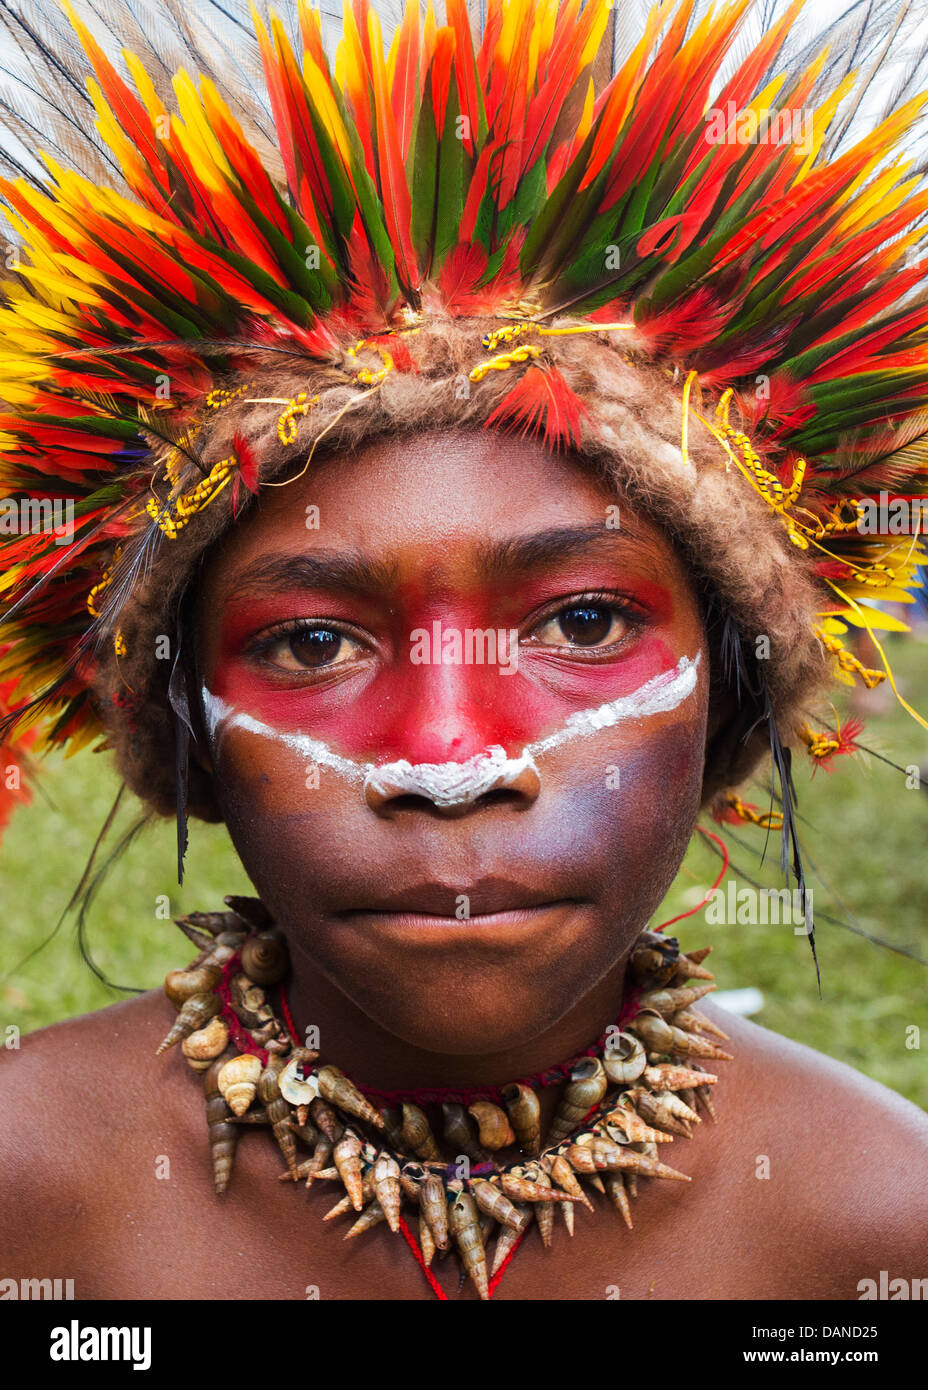 Young boy wearing a brightly coloured headdress made from lorikeet feathers, Goroka show, Papua New Guinea - Stock Image